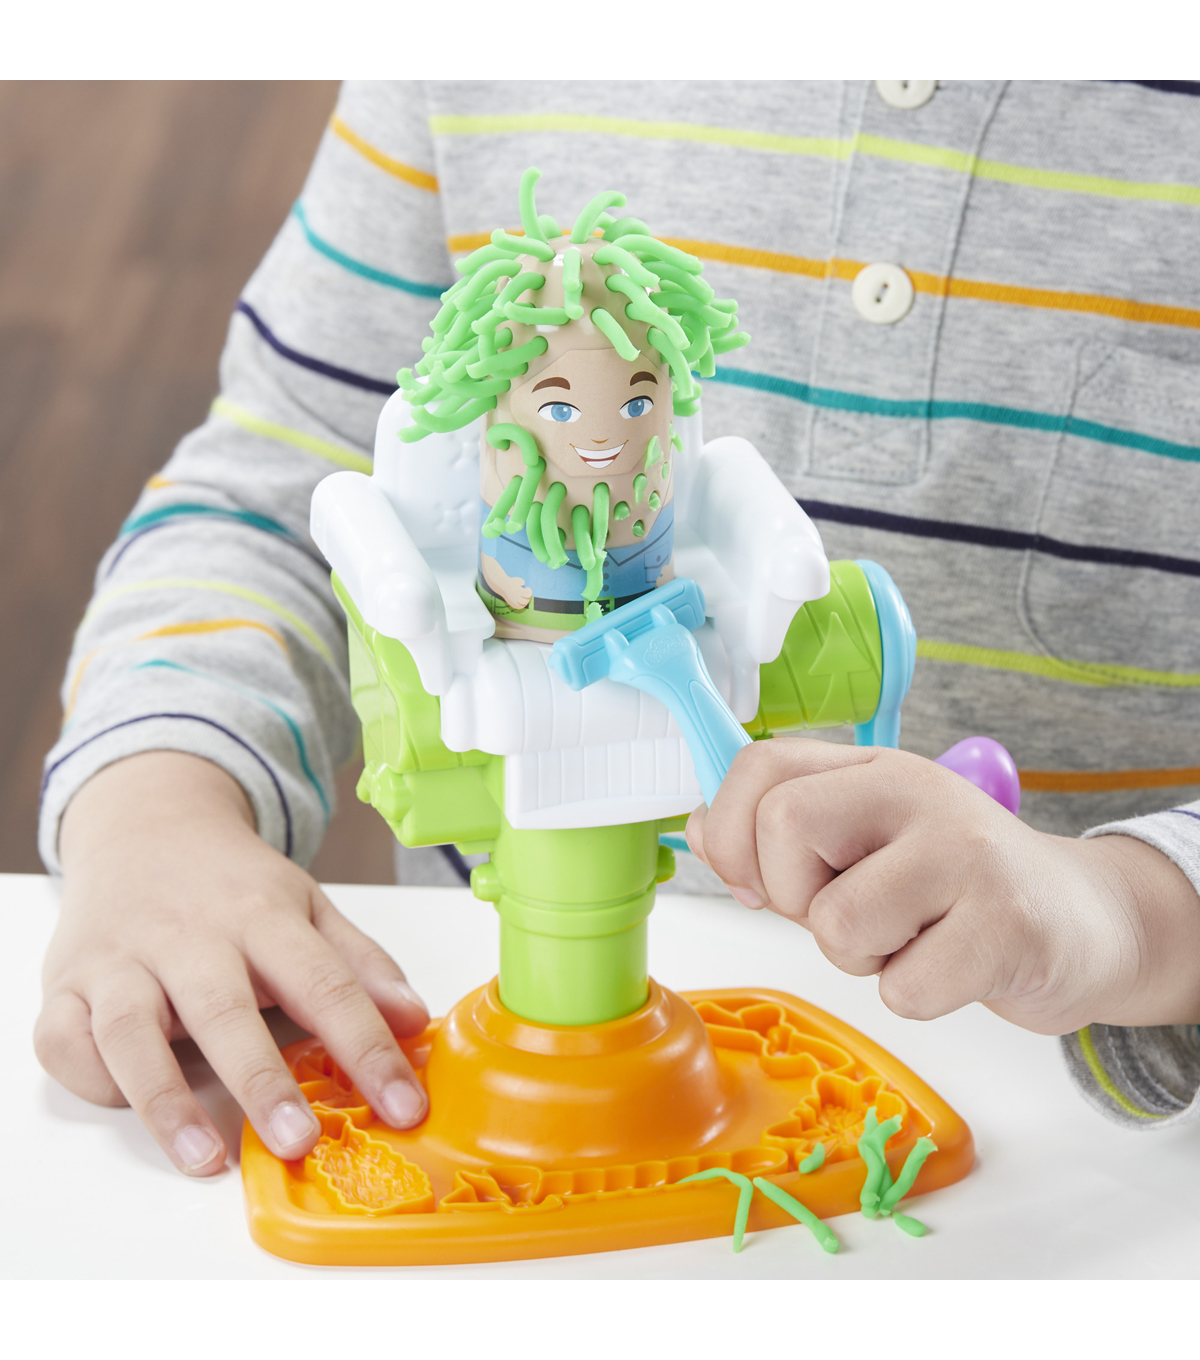 acef8dbc0fd Play-Doh Buzz 'n Cut Barber Shop Playset | JOANN